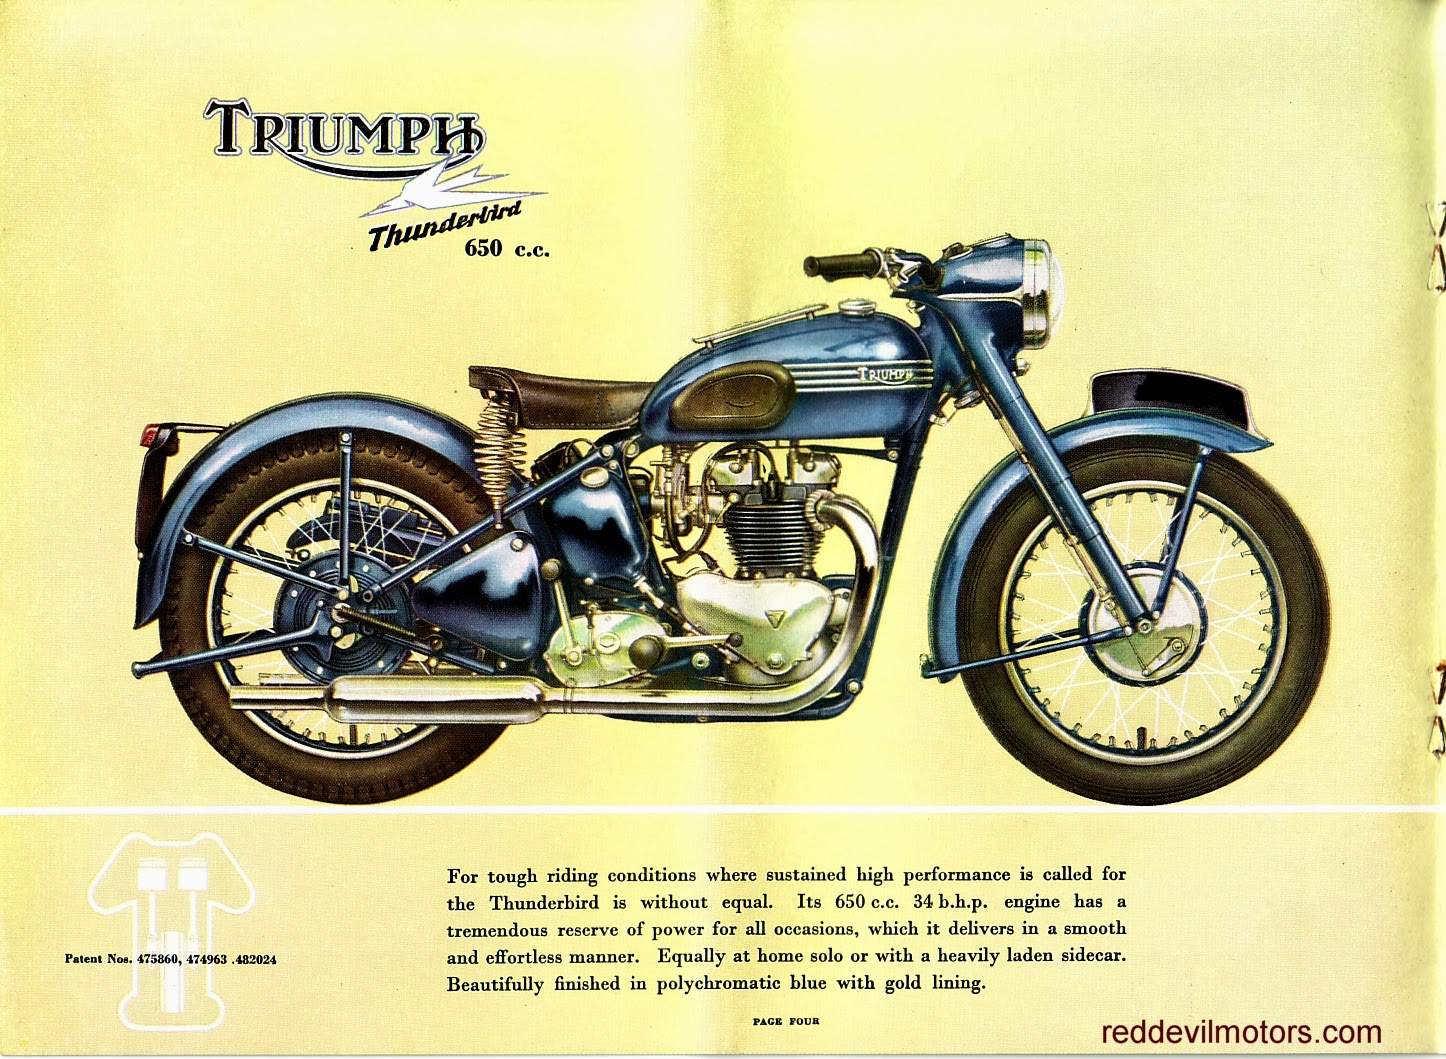 Vincent motorcycle brochure 1952 front cover - Triumph Brochure 1952 Page 5